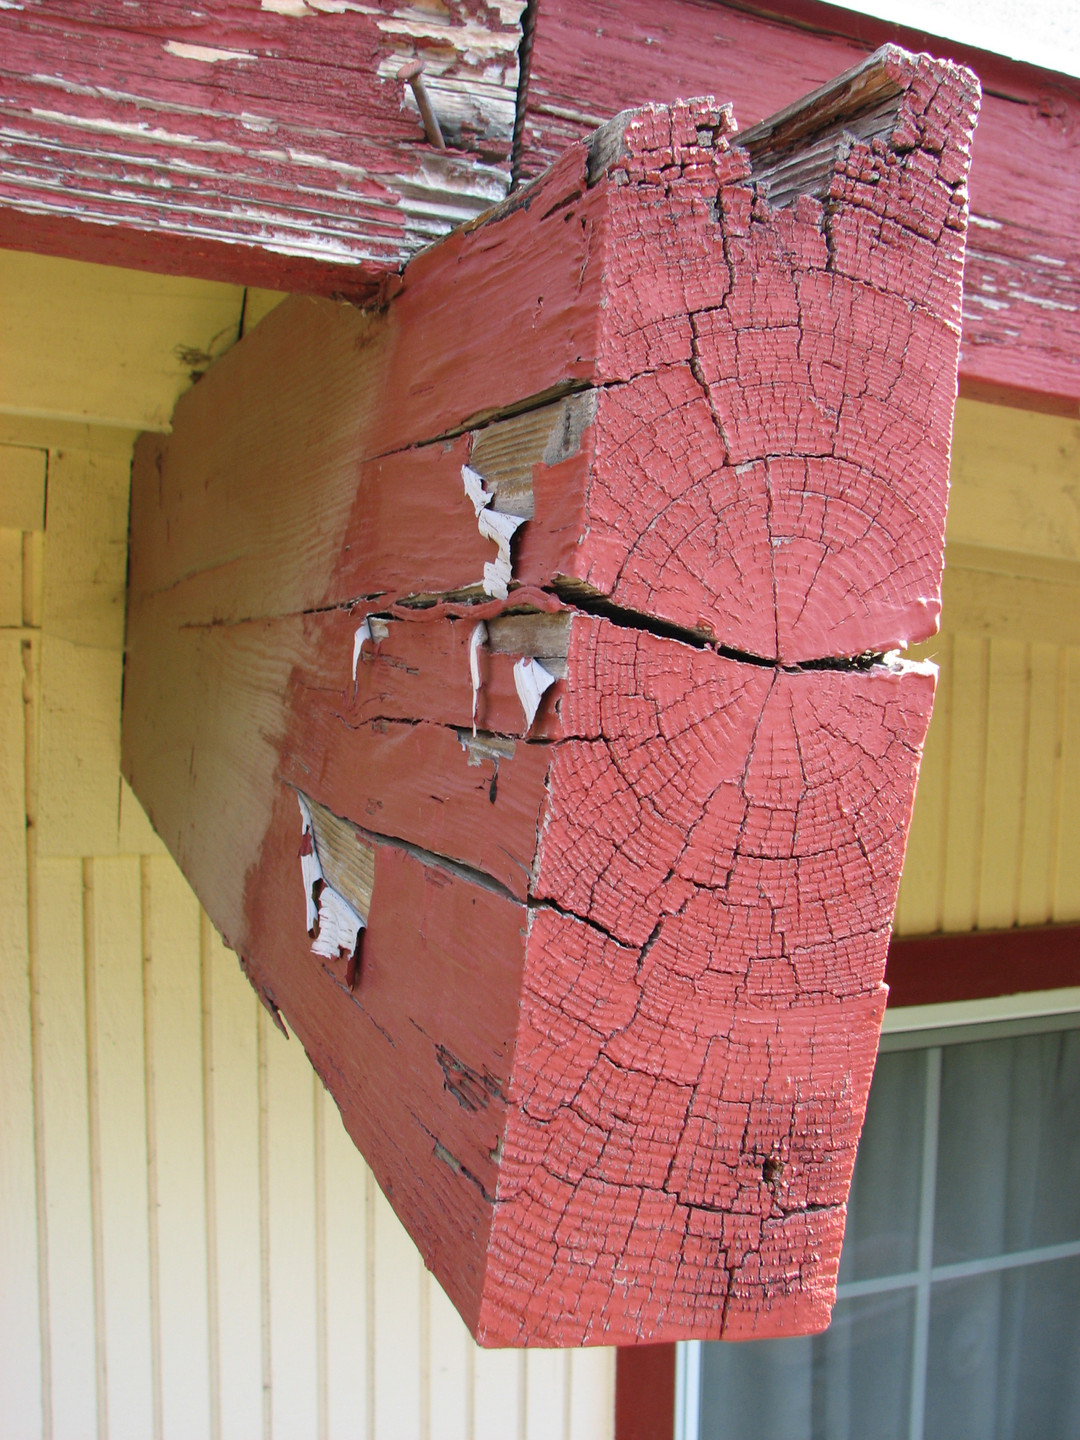 end cracking from dry rot